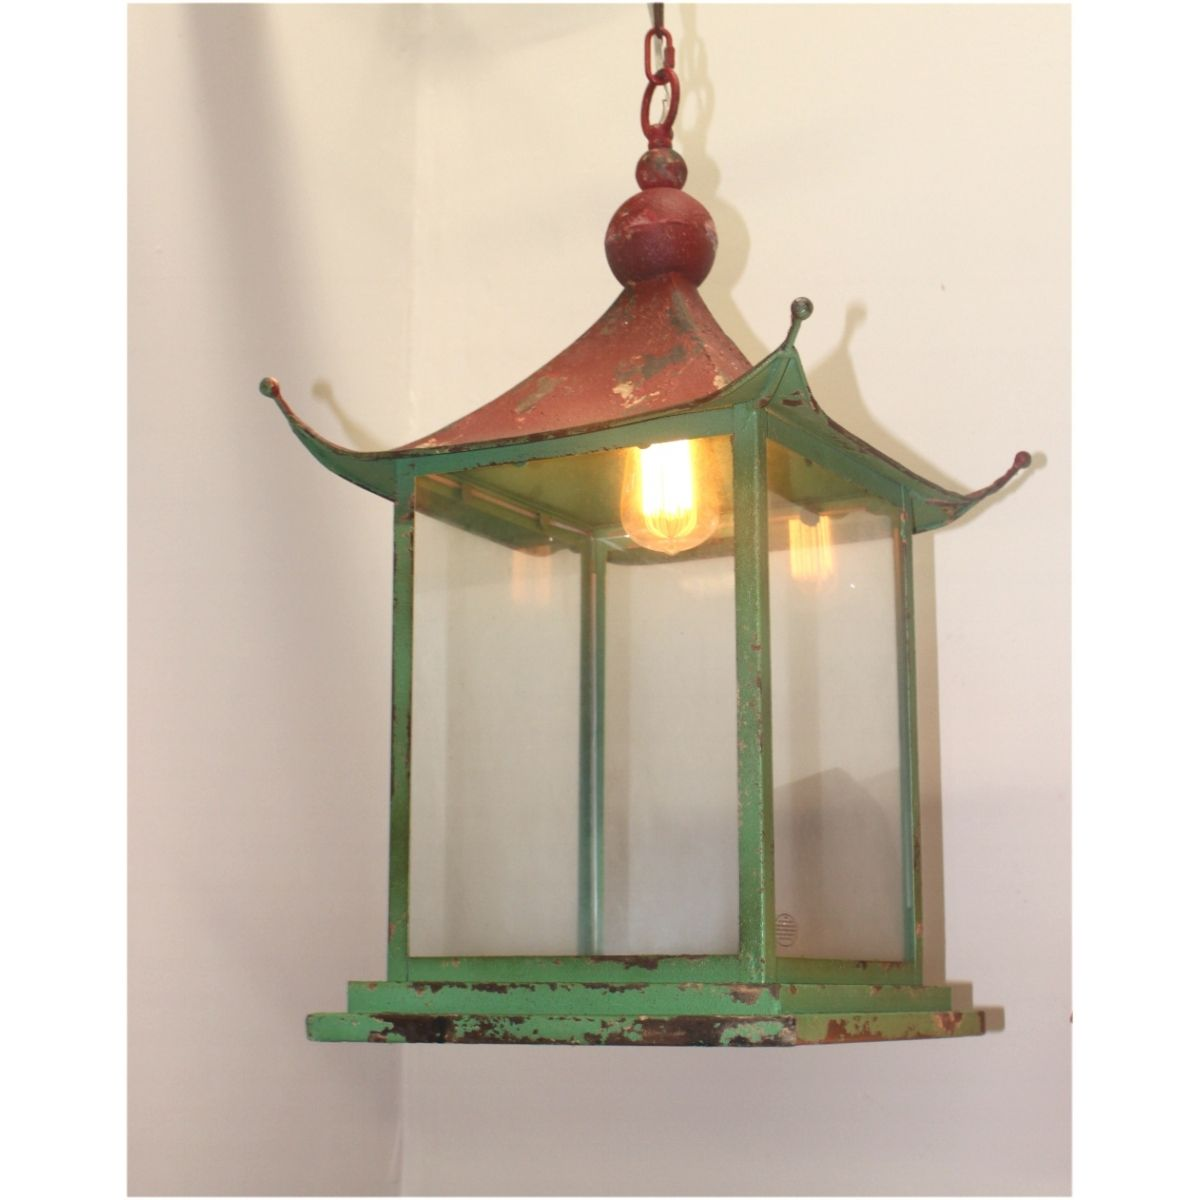 Chinese pagoda pendant chandelier light fixture old red green paint chinese pagoda pendant chandelier light fixture old red green paint asian influence arubaitofo Gallery